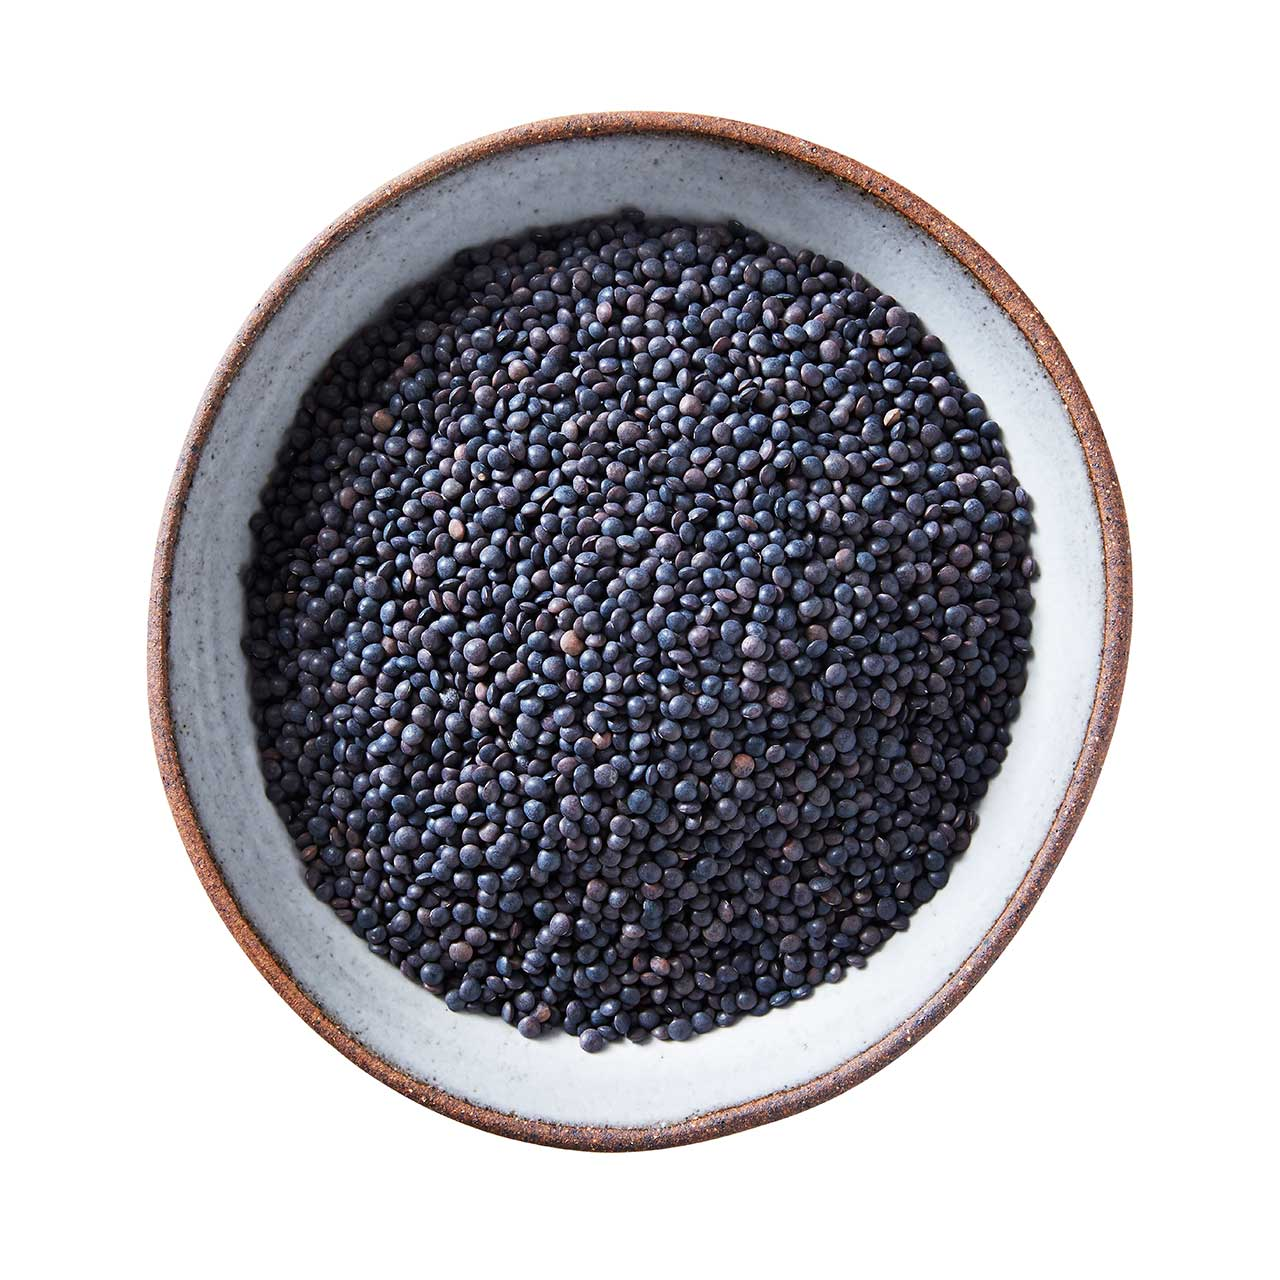 Beluga Black Lentils Mount Zero Olives